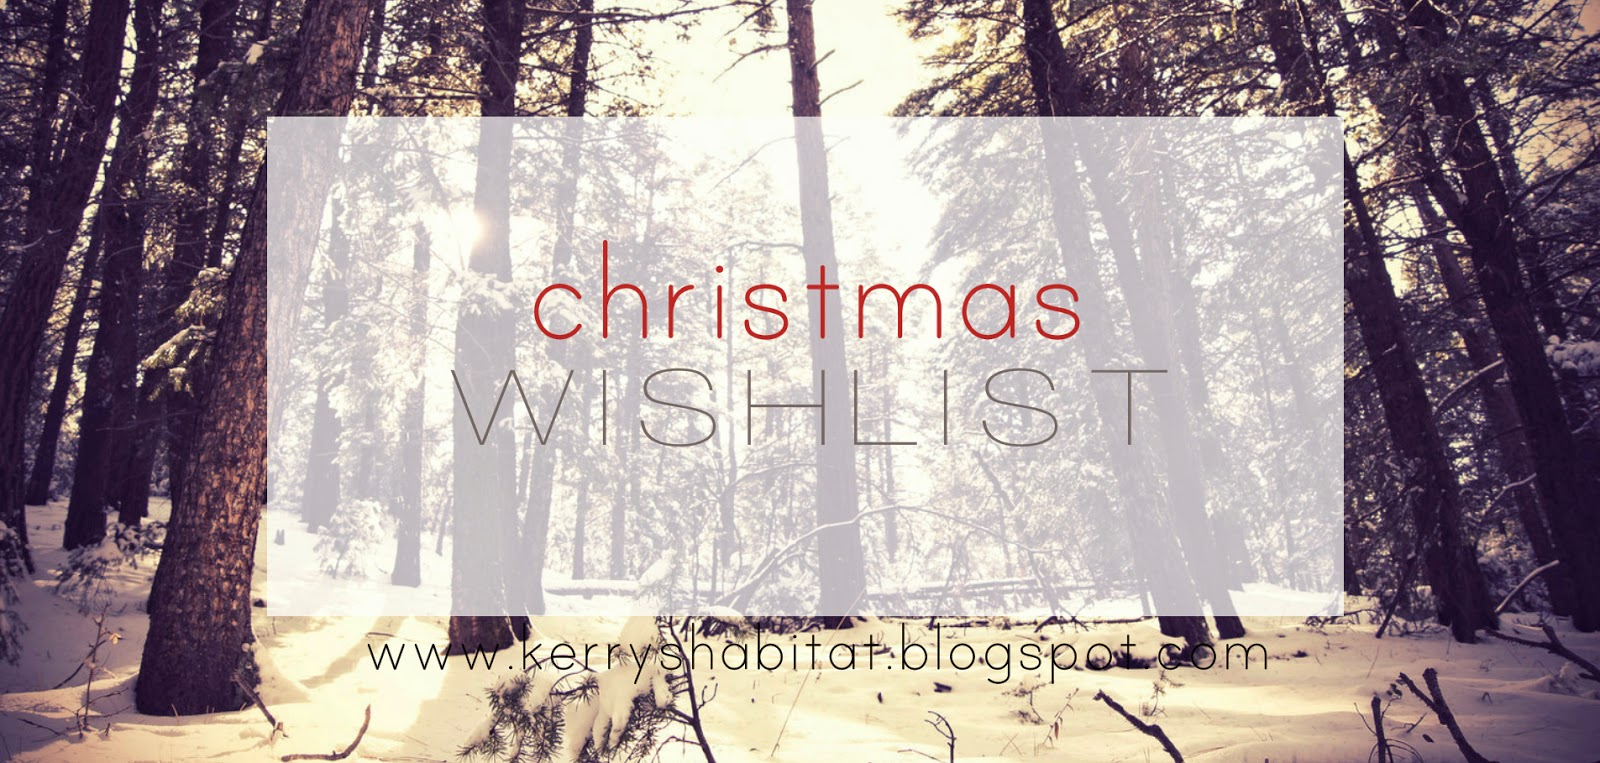 http://kerryshabitat.blogspot.co.uk/2013/11/christmas-wish-list-ultimaterealistic.html